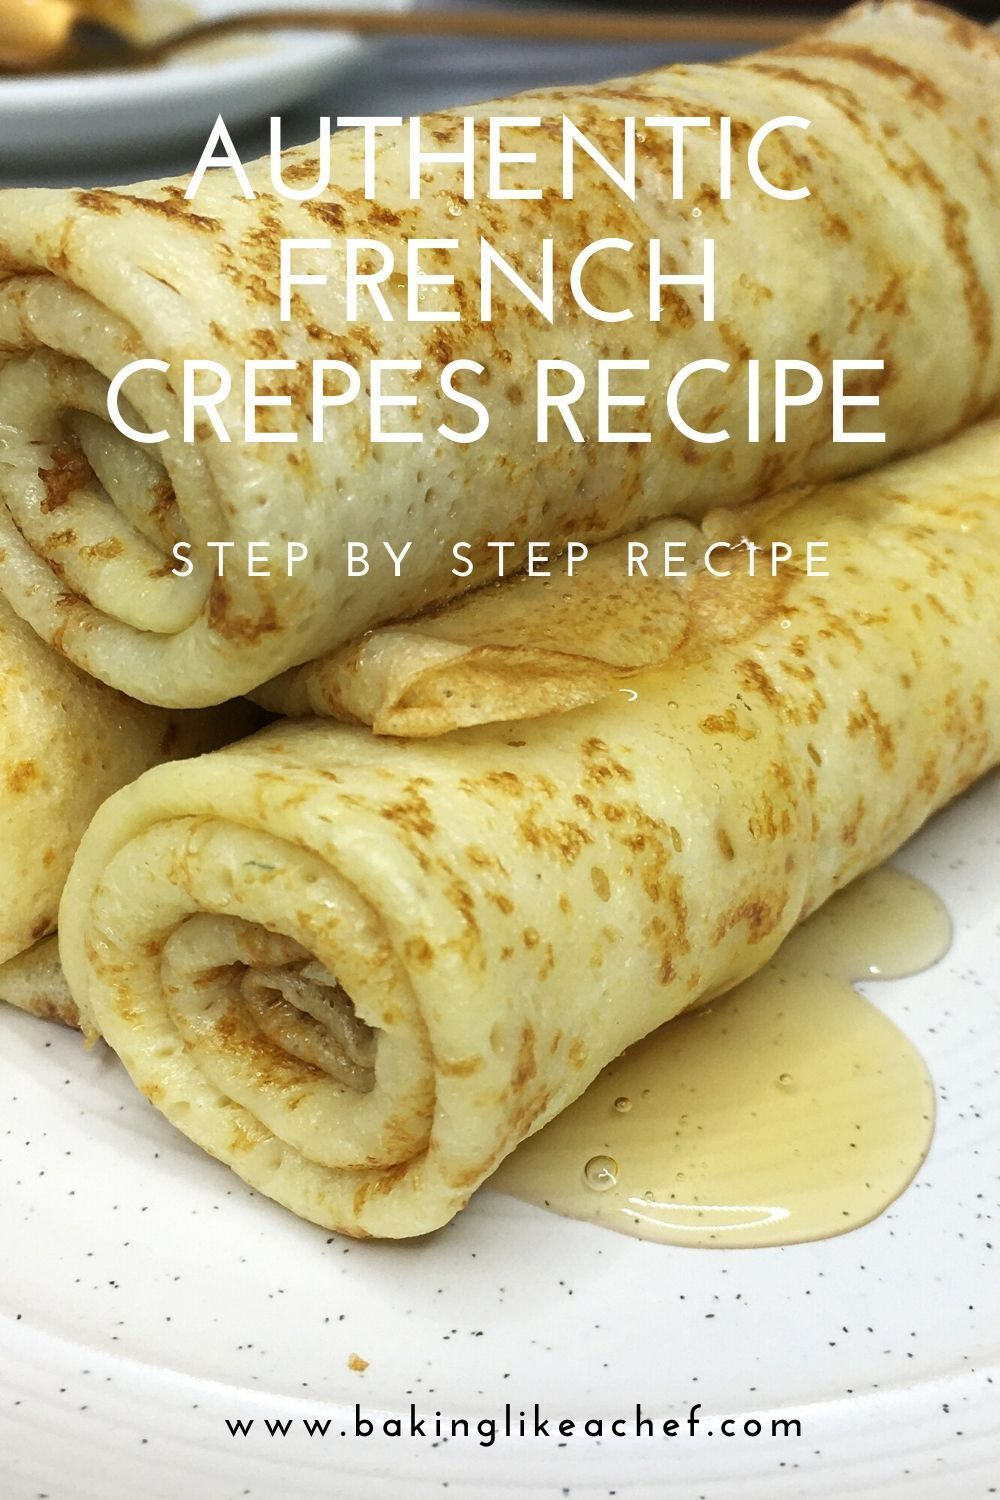 French Crepe Recipe Crepes Francaises Recipe French Crepe Recipe French Crepes Recipe Easy Authentic French Crepes Recipe